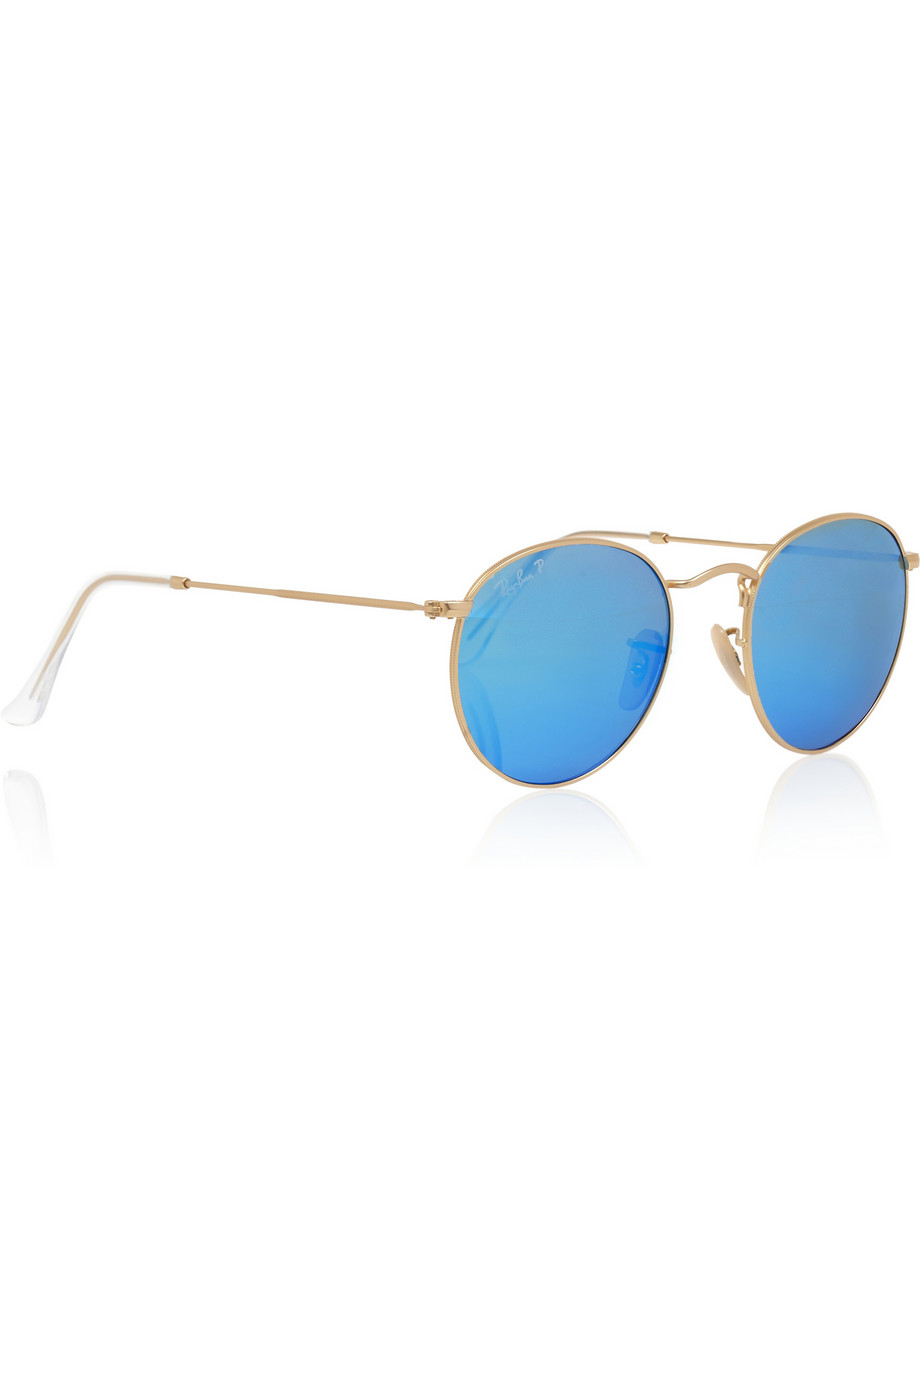 48571c7b1d Lyst - Ray-Ban Round-Frame Gold-Tone Polarized Mirrored Sunglasses in  Metallic ...